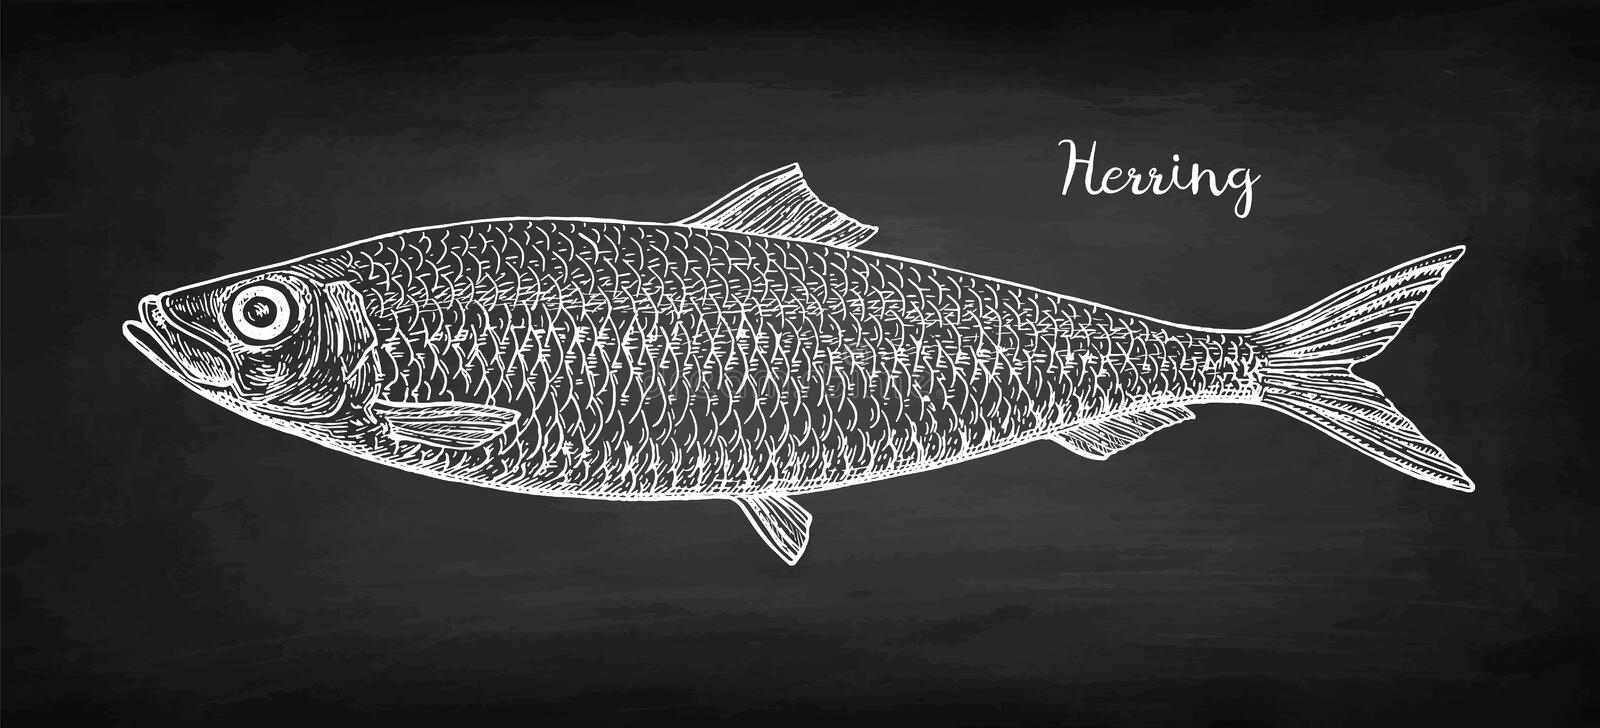 Chalk sketch of herring. Chalk sketch of herring on blackboard background. Hand drawn vector illustration. Retro style vector illustration